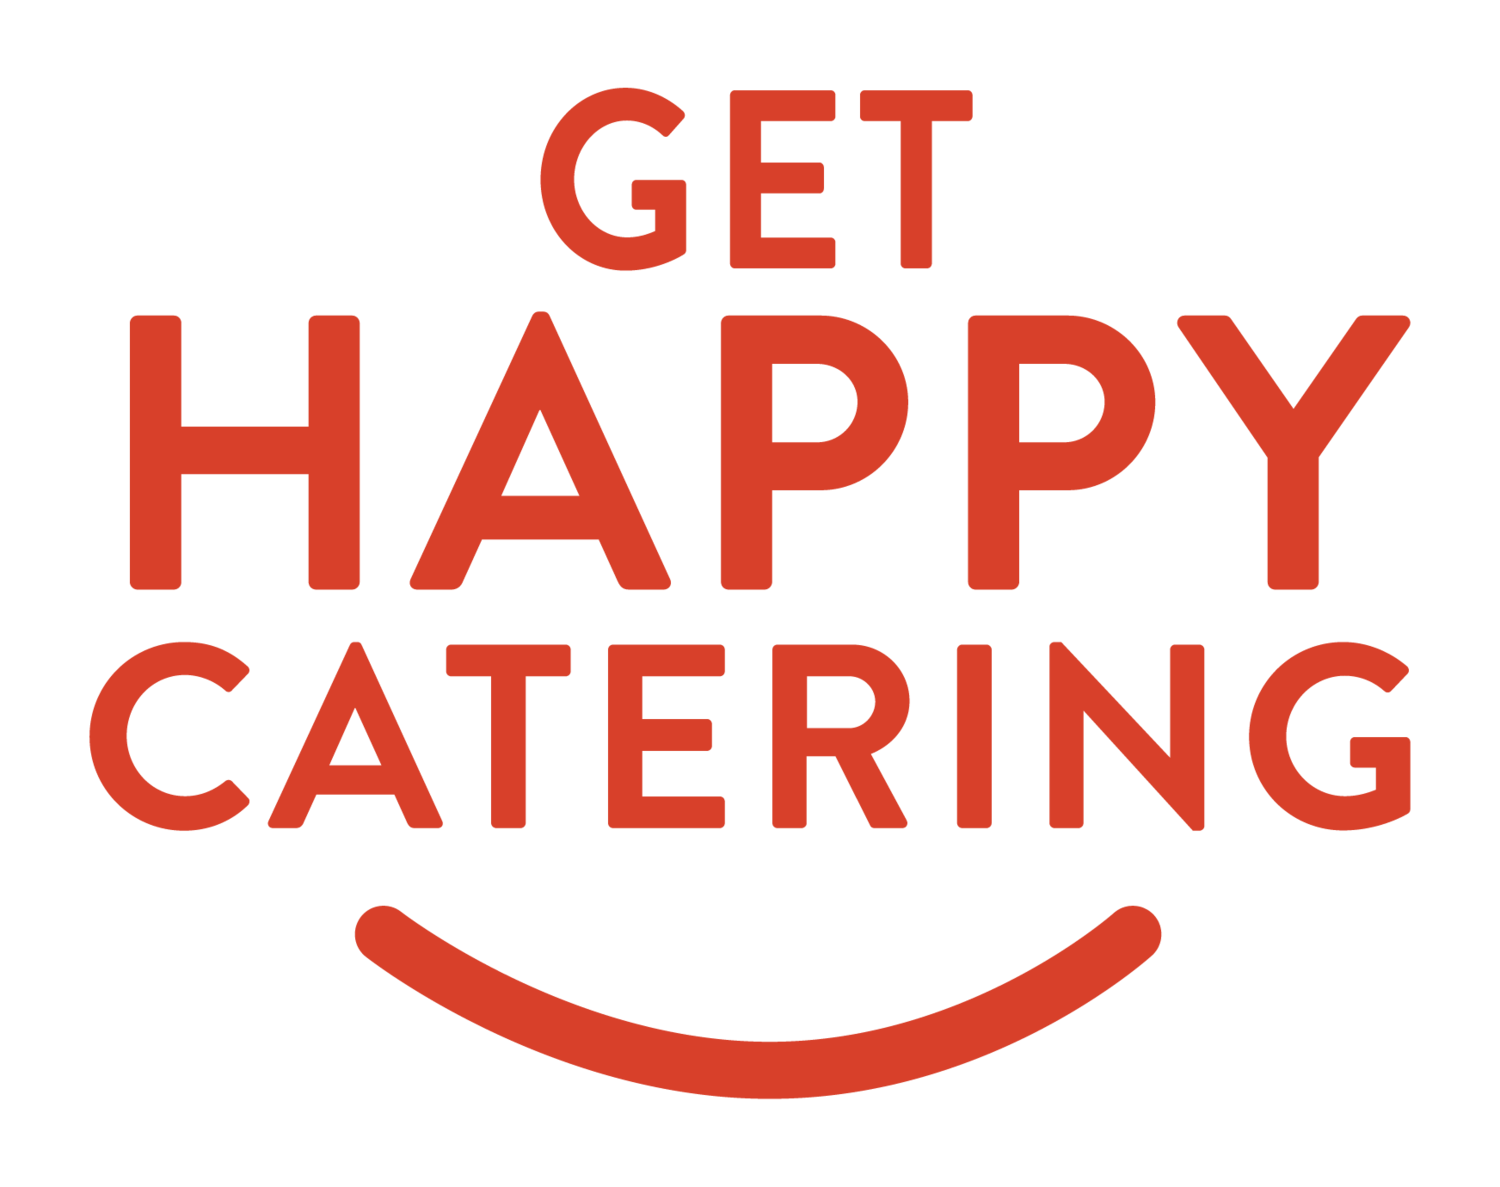 Get Happy Catering